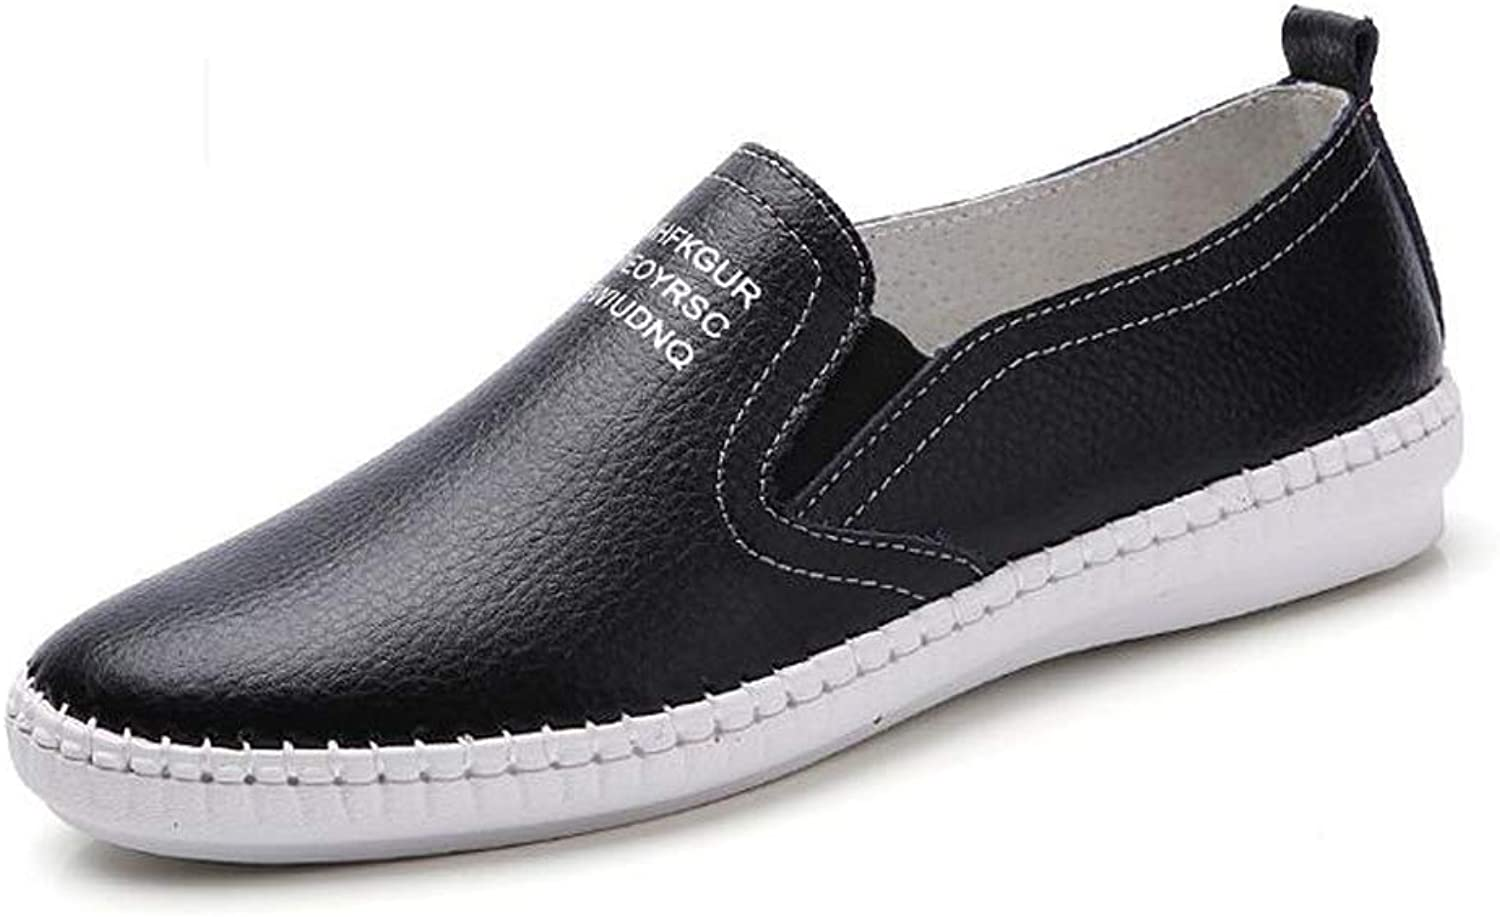 Women's Fashion Flats Comfortable Leather Non-Slip Casual shoes.